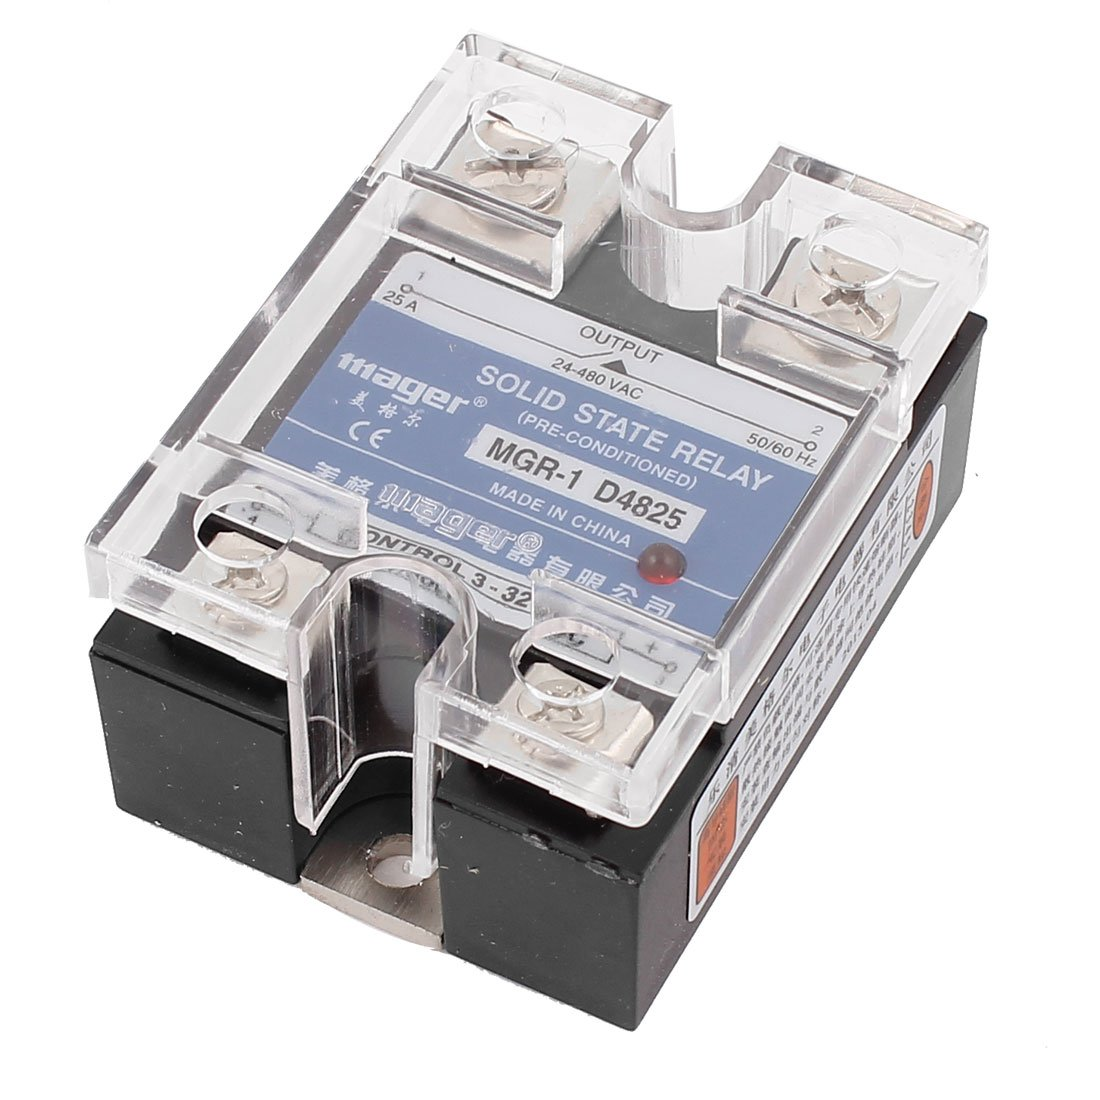 Sourcingmap Mgr 1 D4825 Single Phase Solid State Relay Ssr 25a Dc 3 For 32v Ac 24 480v Temperature Con Diy Tools